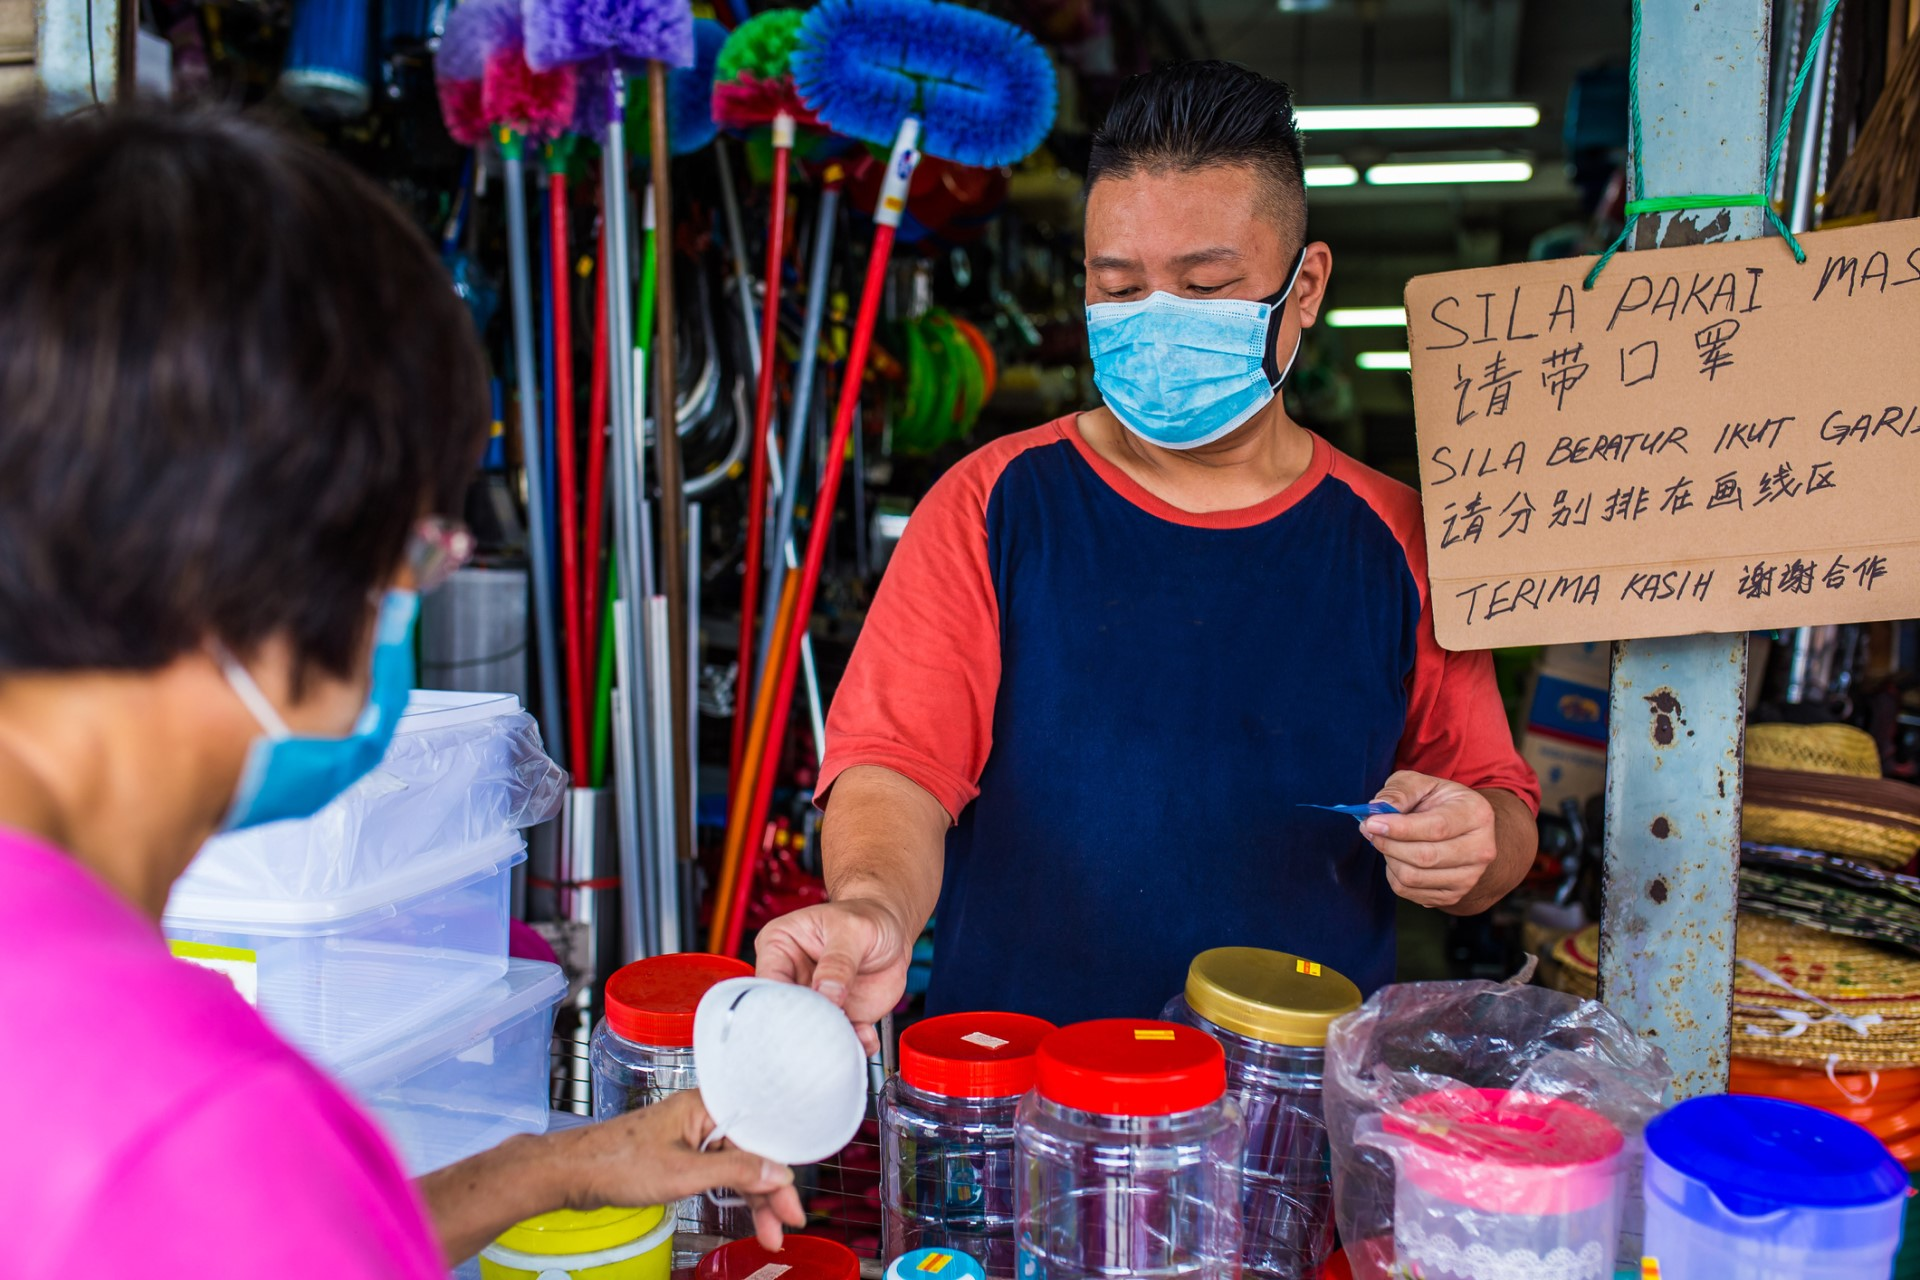 A shopkeeper asks customers to always wear a mask when buying from his store. Photo credit: iStock/Kong Ding Chek.